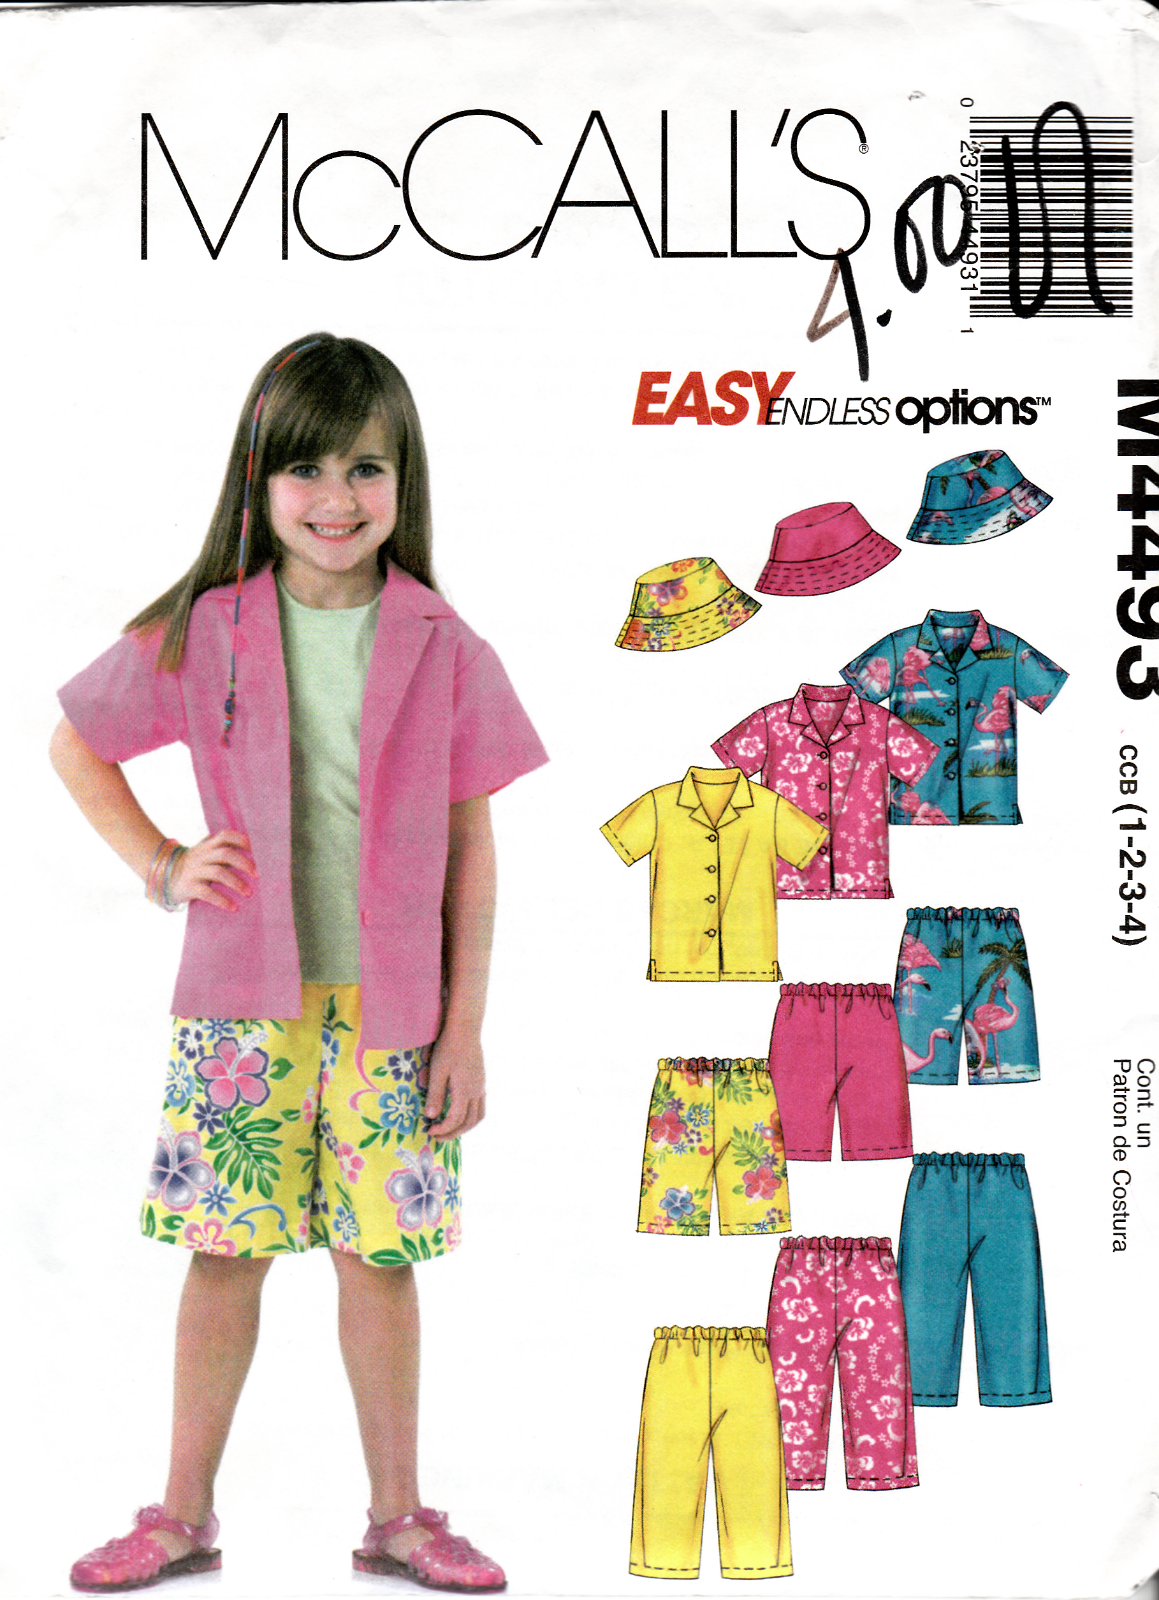 McCalls Pattern M4493 Toddlers Shirt Pants Shorts, Hat in Two Sizes 1-4 New  - $3.47